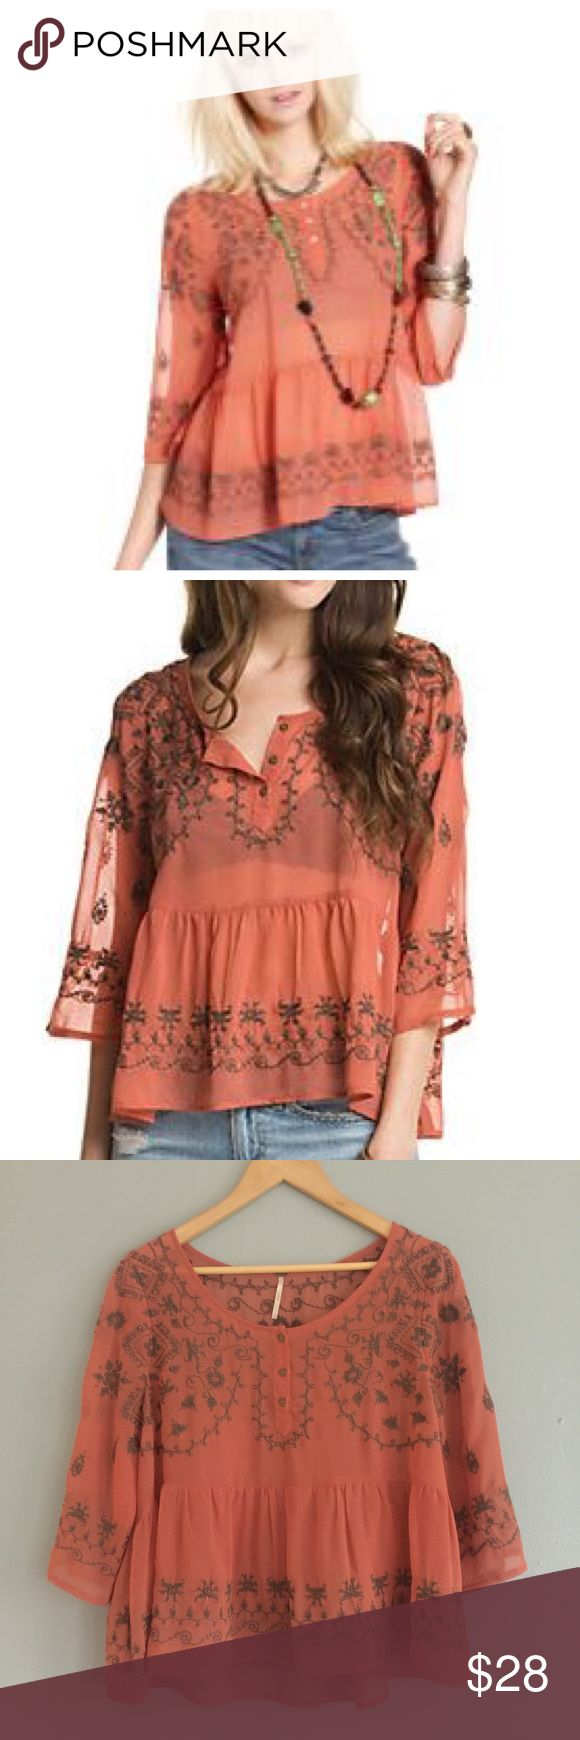 Free People Sequel Pennies top in Canyon Rose Bask in breezy bohemian style with the Free People Pennies top--eclectic embroidery and an airy silhouette are rustic musts. Polyester Machine wash Imported Round neck with partial button placket, three quarter sleeves, pleated Free People Tops